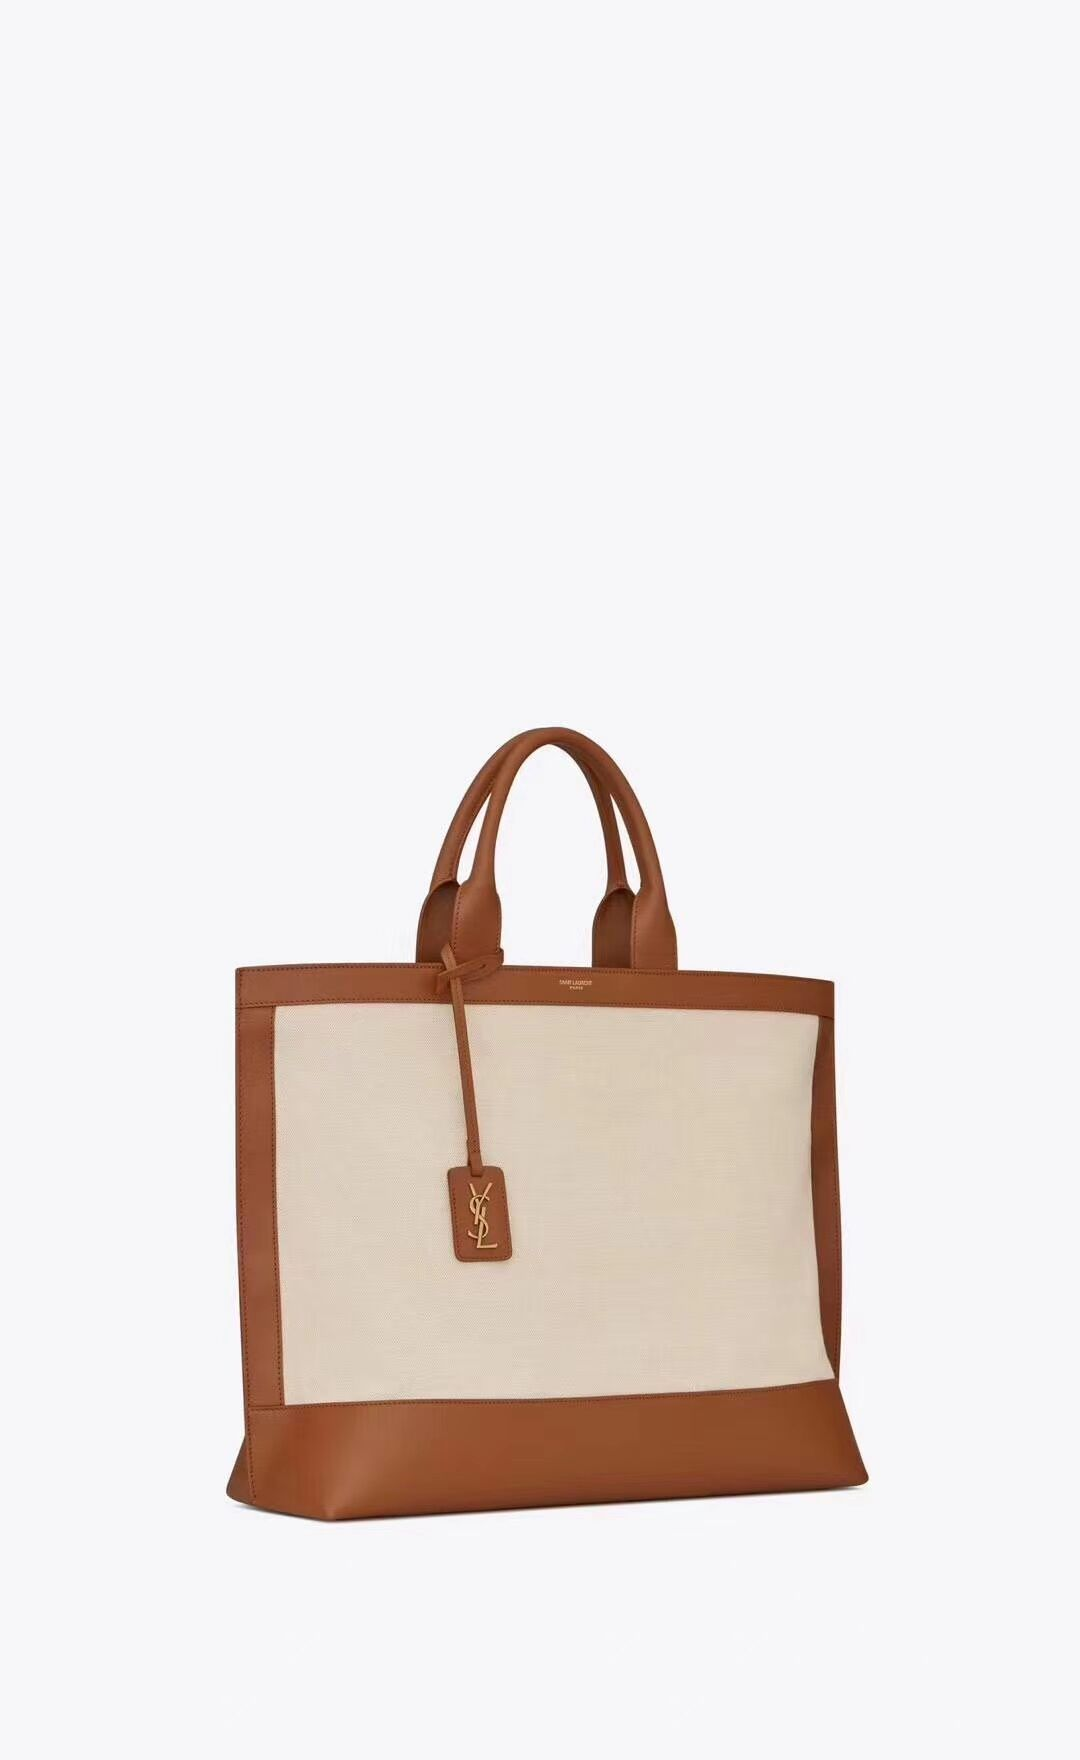 Yves Saint Laurent CANVAS tote bag Y615719 brown&white